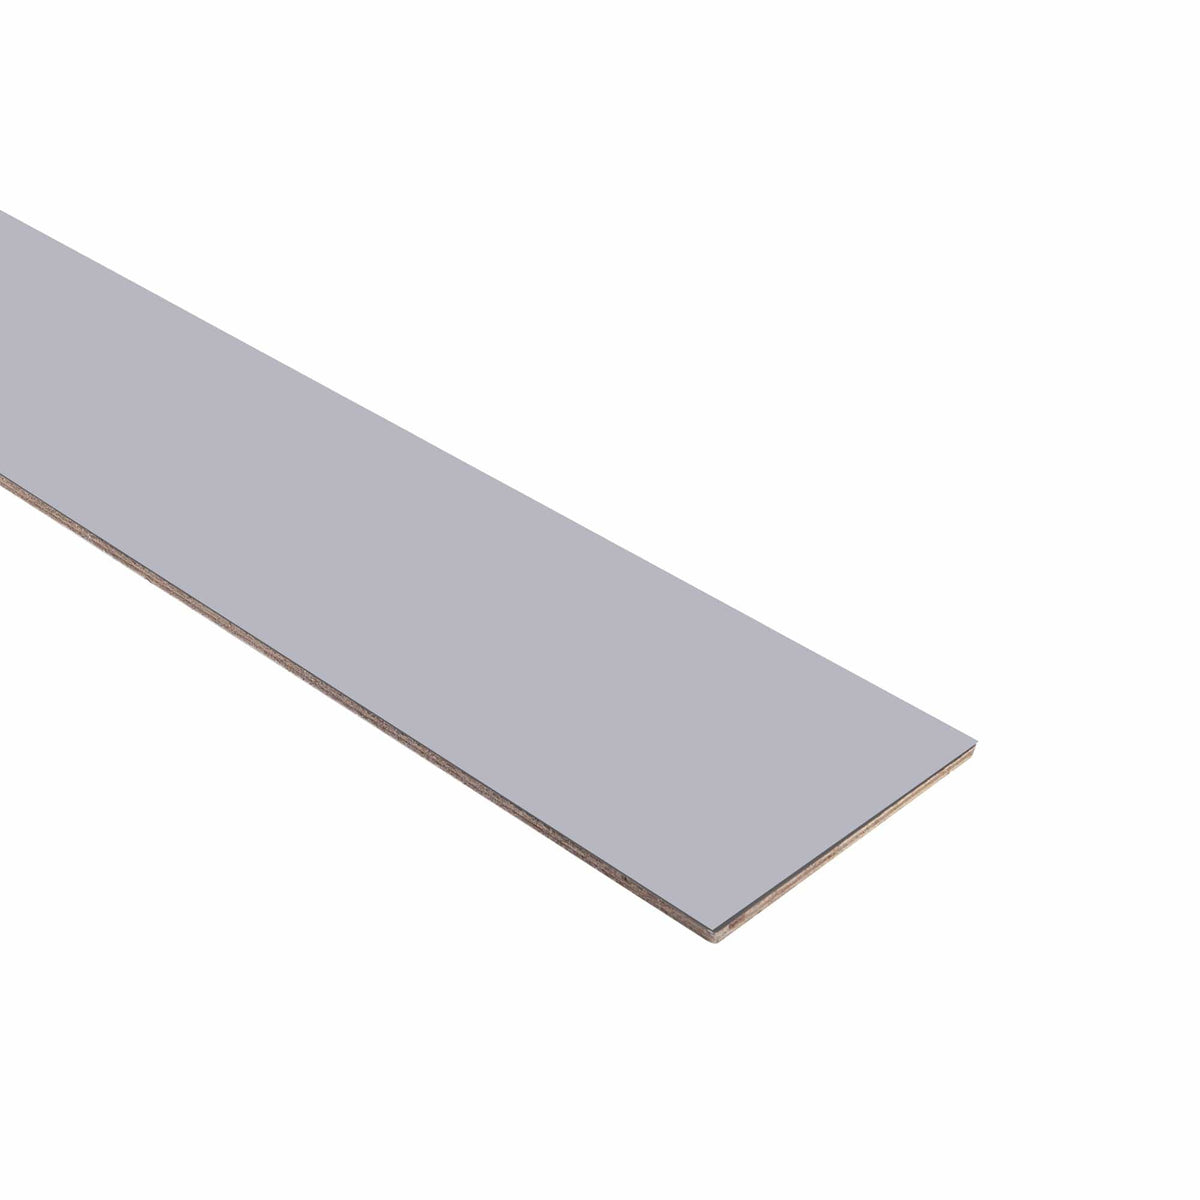 Accessories Light Gray Shaker Toe Kick Skin Molding Trim Pieces LGSTK8 Inset Kitchen Cabinets